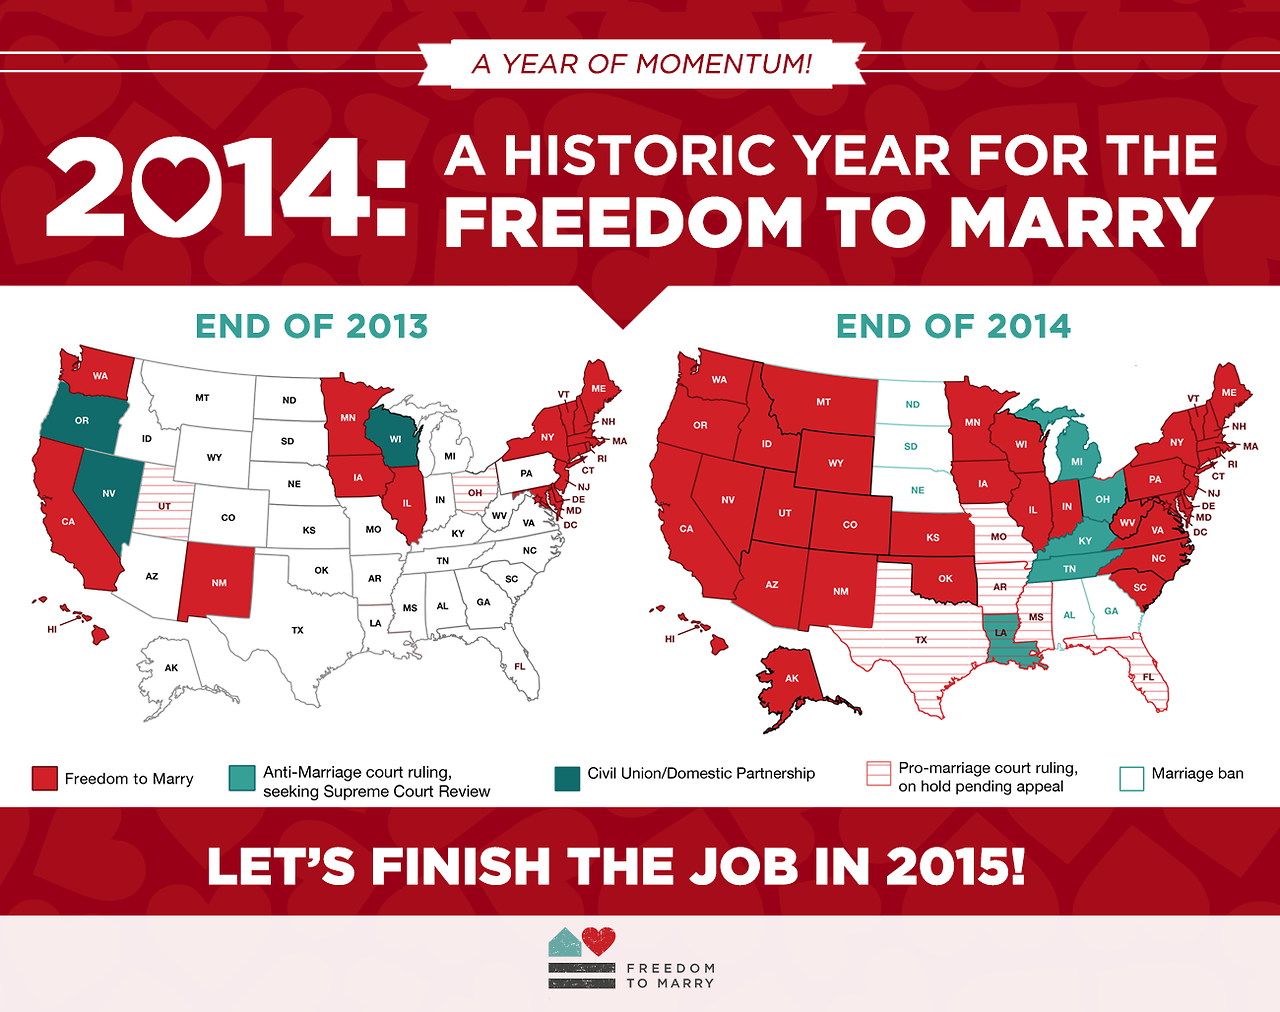 What a difference a year makes - in 2014, the number of freedom to marry states doubled, and now it's time to make the most of the momentum by finishing the job!